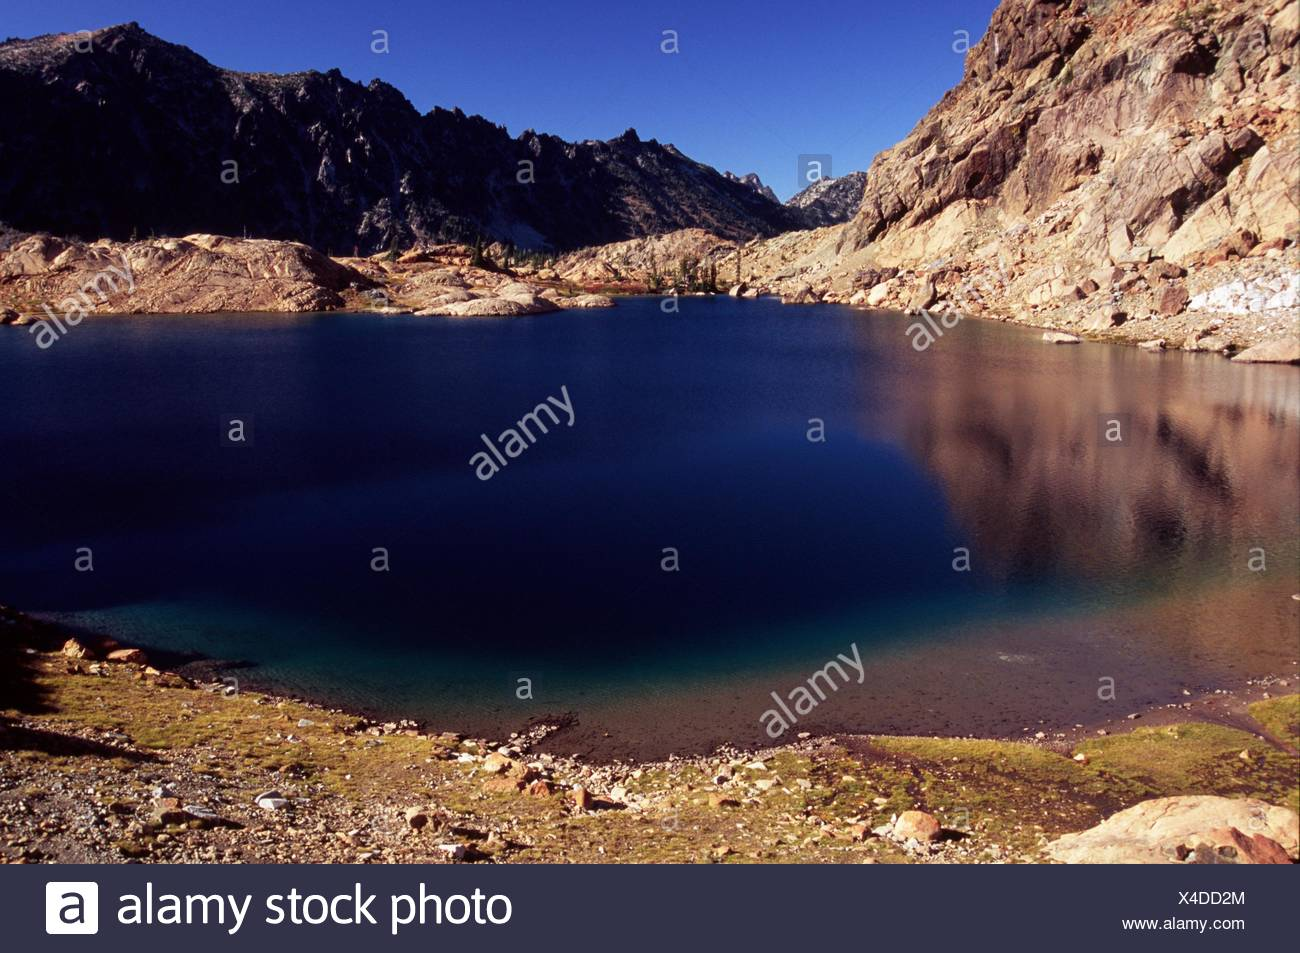 Lake Ingalls, Alpine Lakes Wilderness, Wenatchee National Forest, Washington. - Stock Image